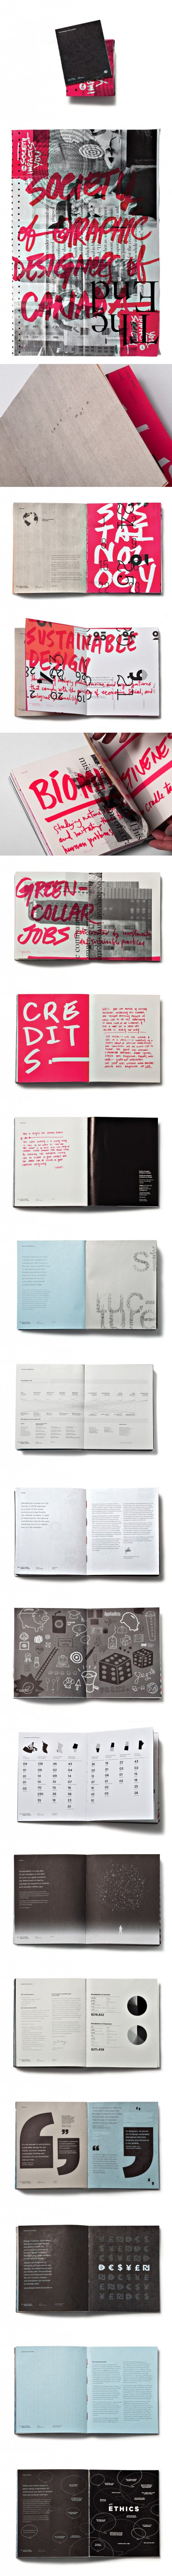 Graphic Designers of Canada Brochure 2009/10 by Foundry Communications